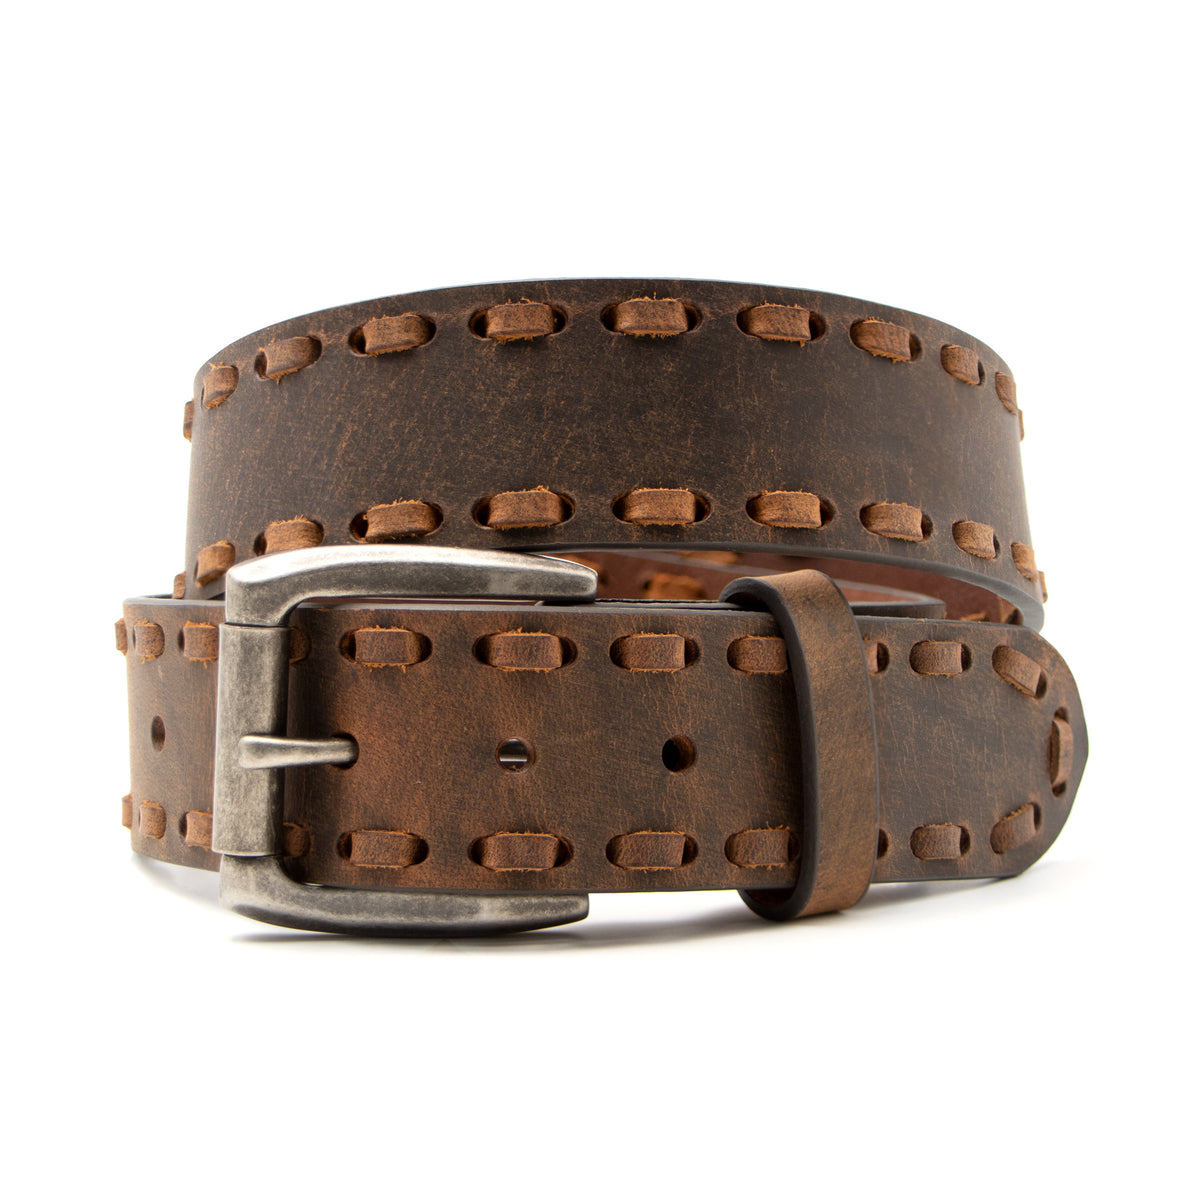 "1 5/8"" Wide Laced Edge Belt"